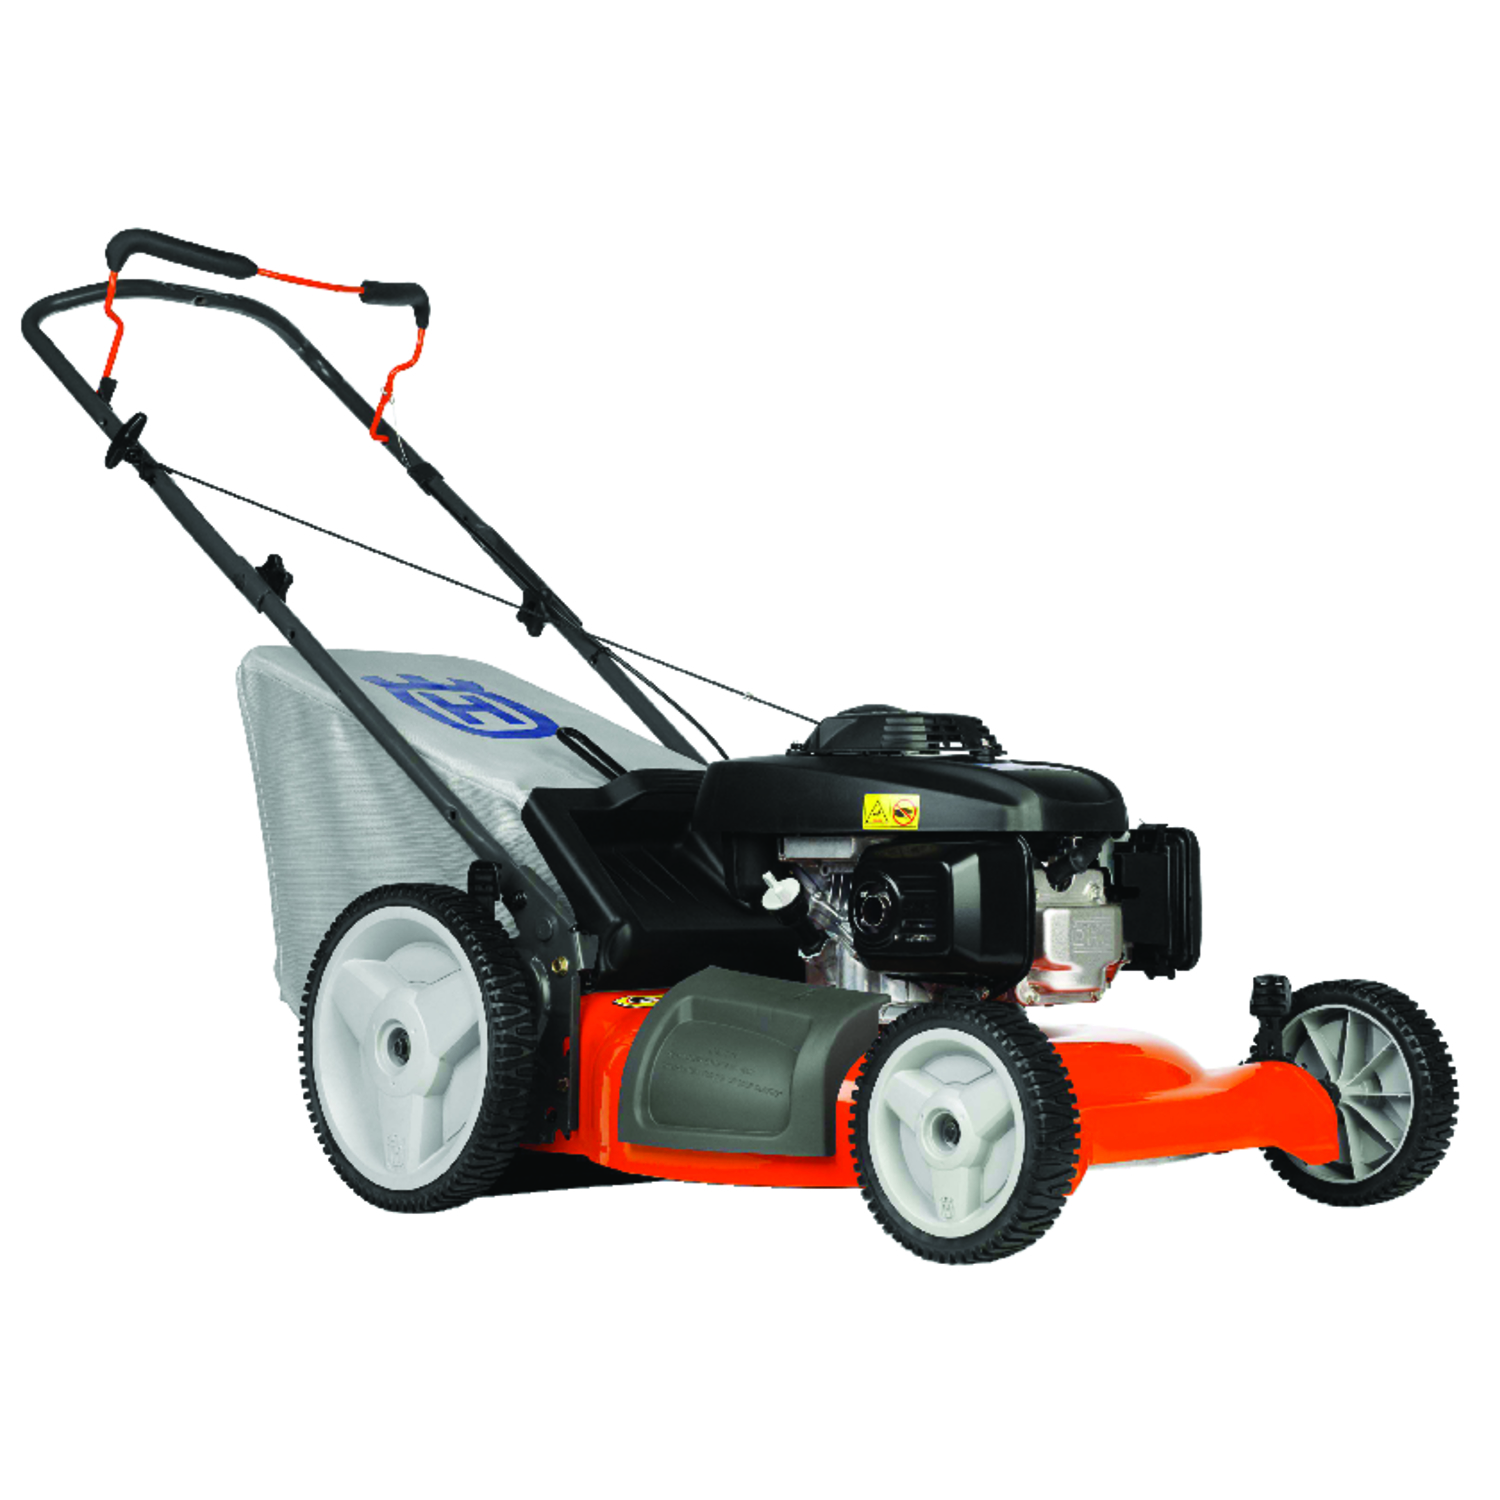 husqvarna 7021p 21 in w 160 cc manual push mulching capability lawn mower ace hardware [ 1500 x 1500 Pixel ]